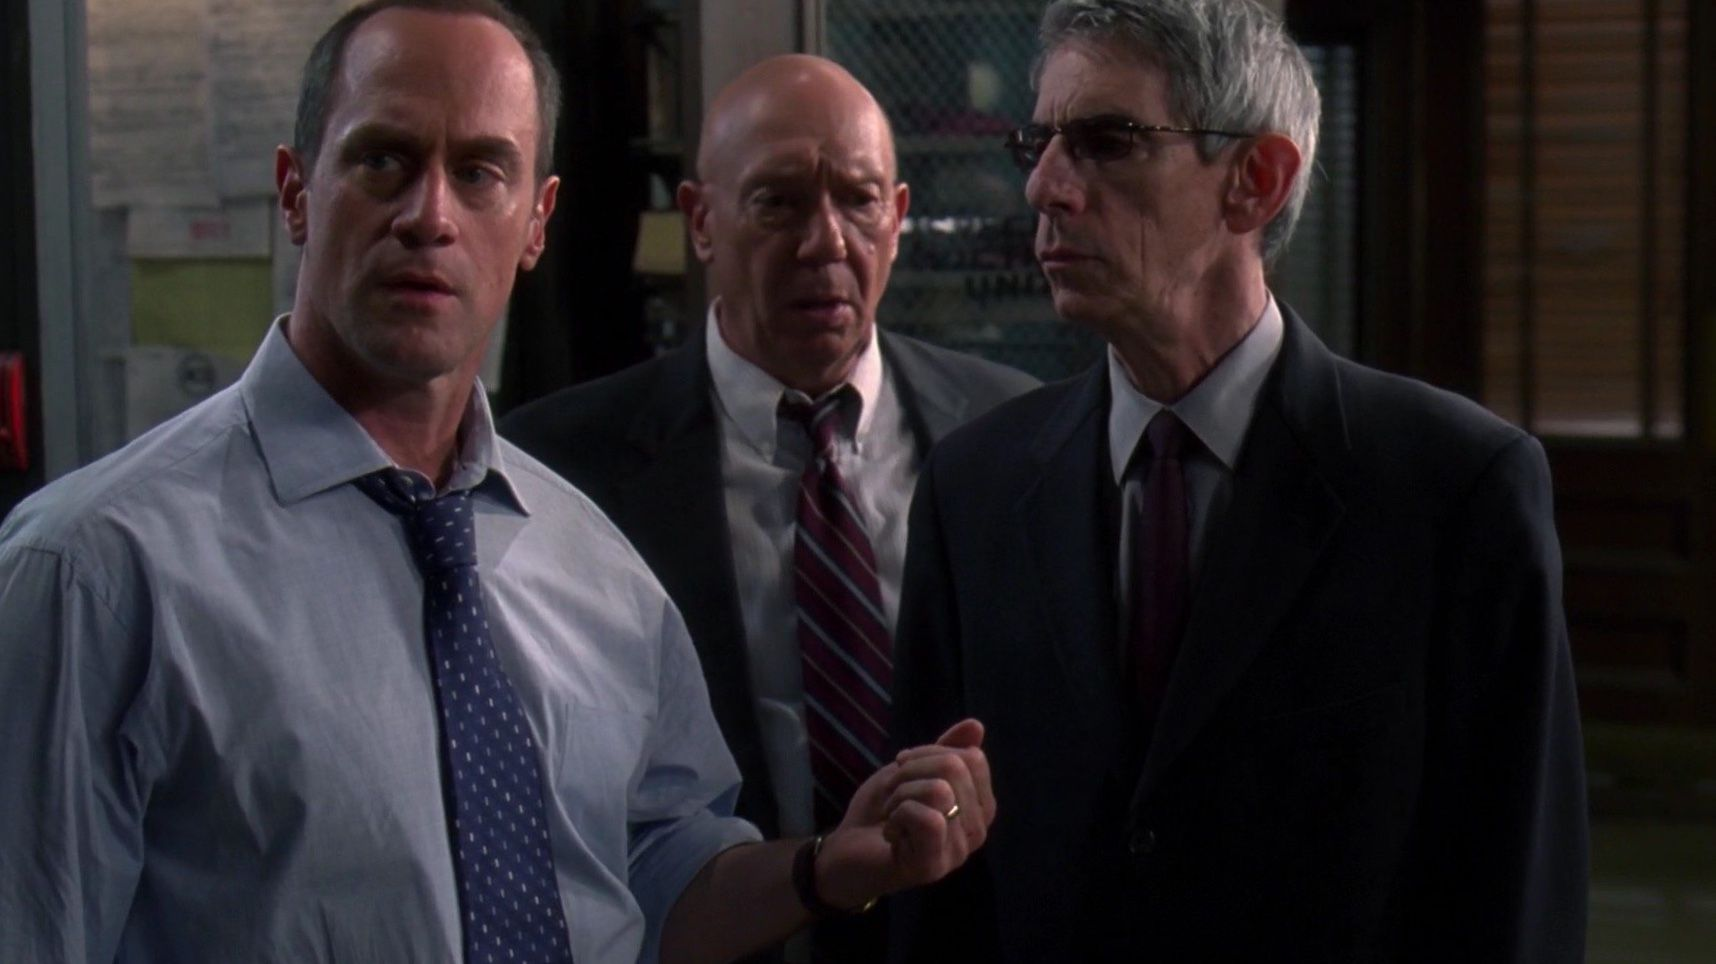 Detective Stabler Captain Cragen Sergeant Munch Law And Order Svu Special Victims Unit Law And Order